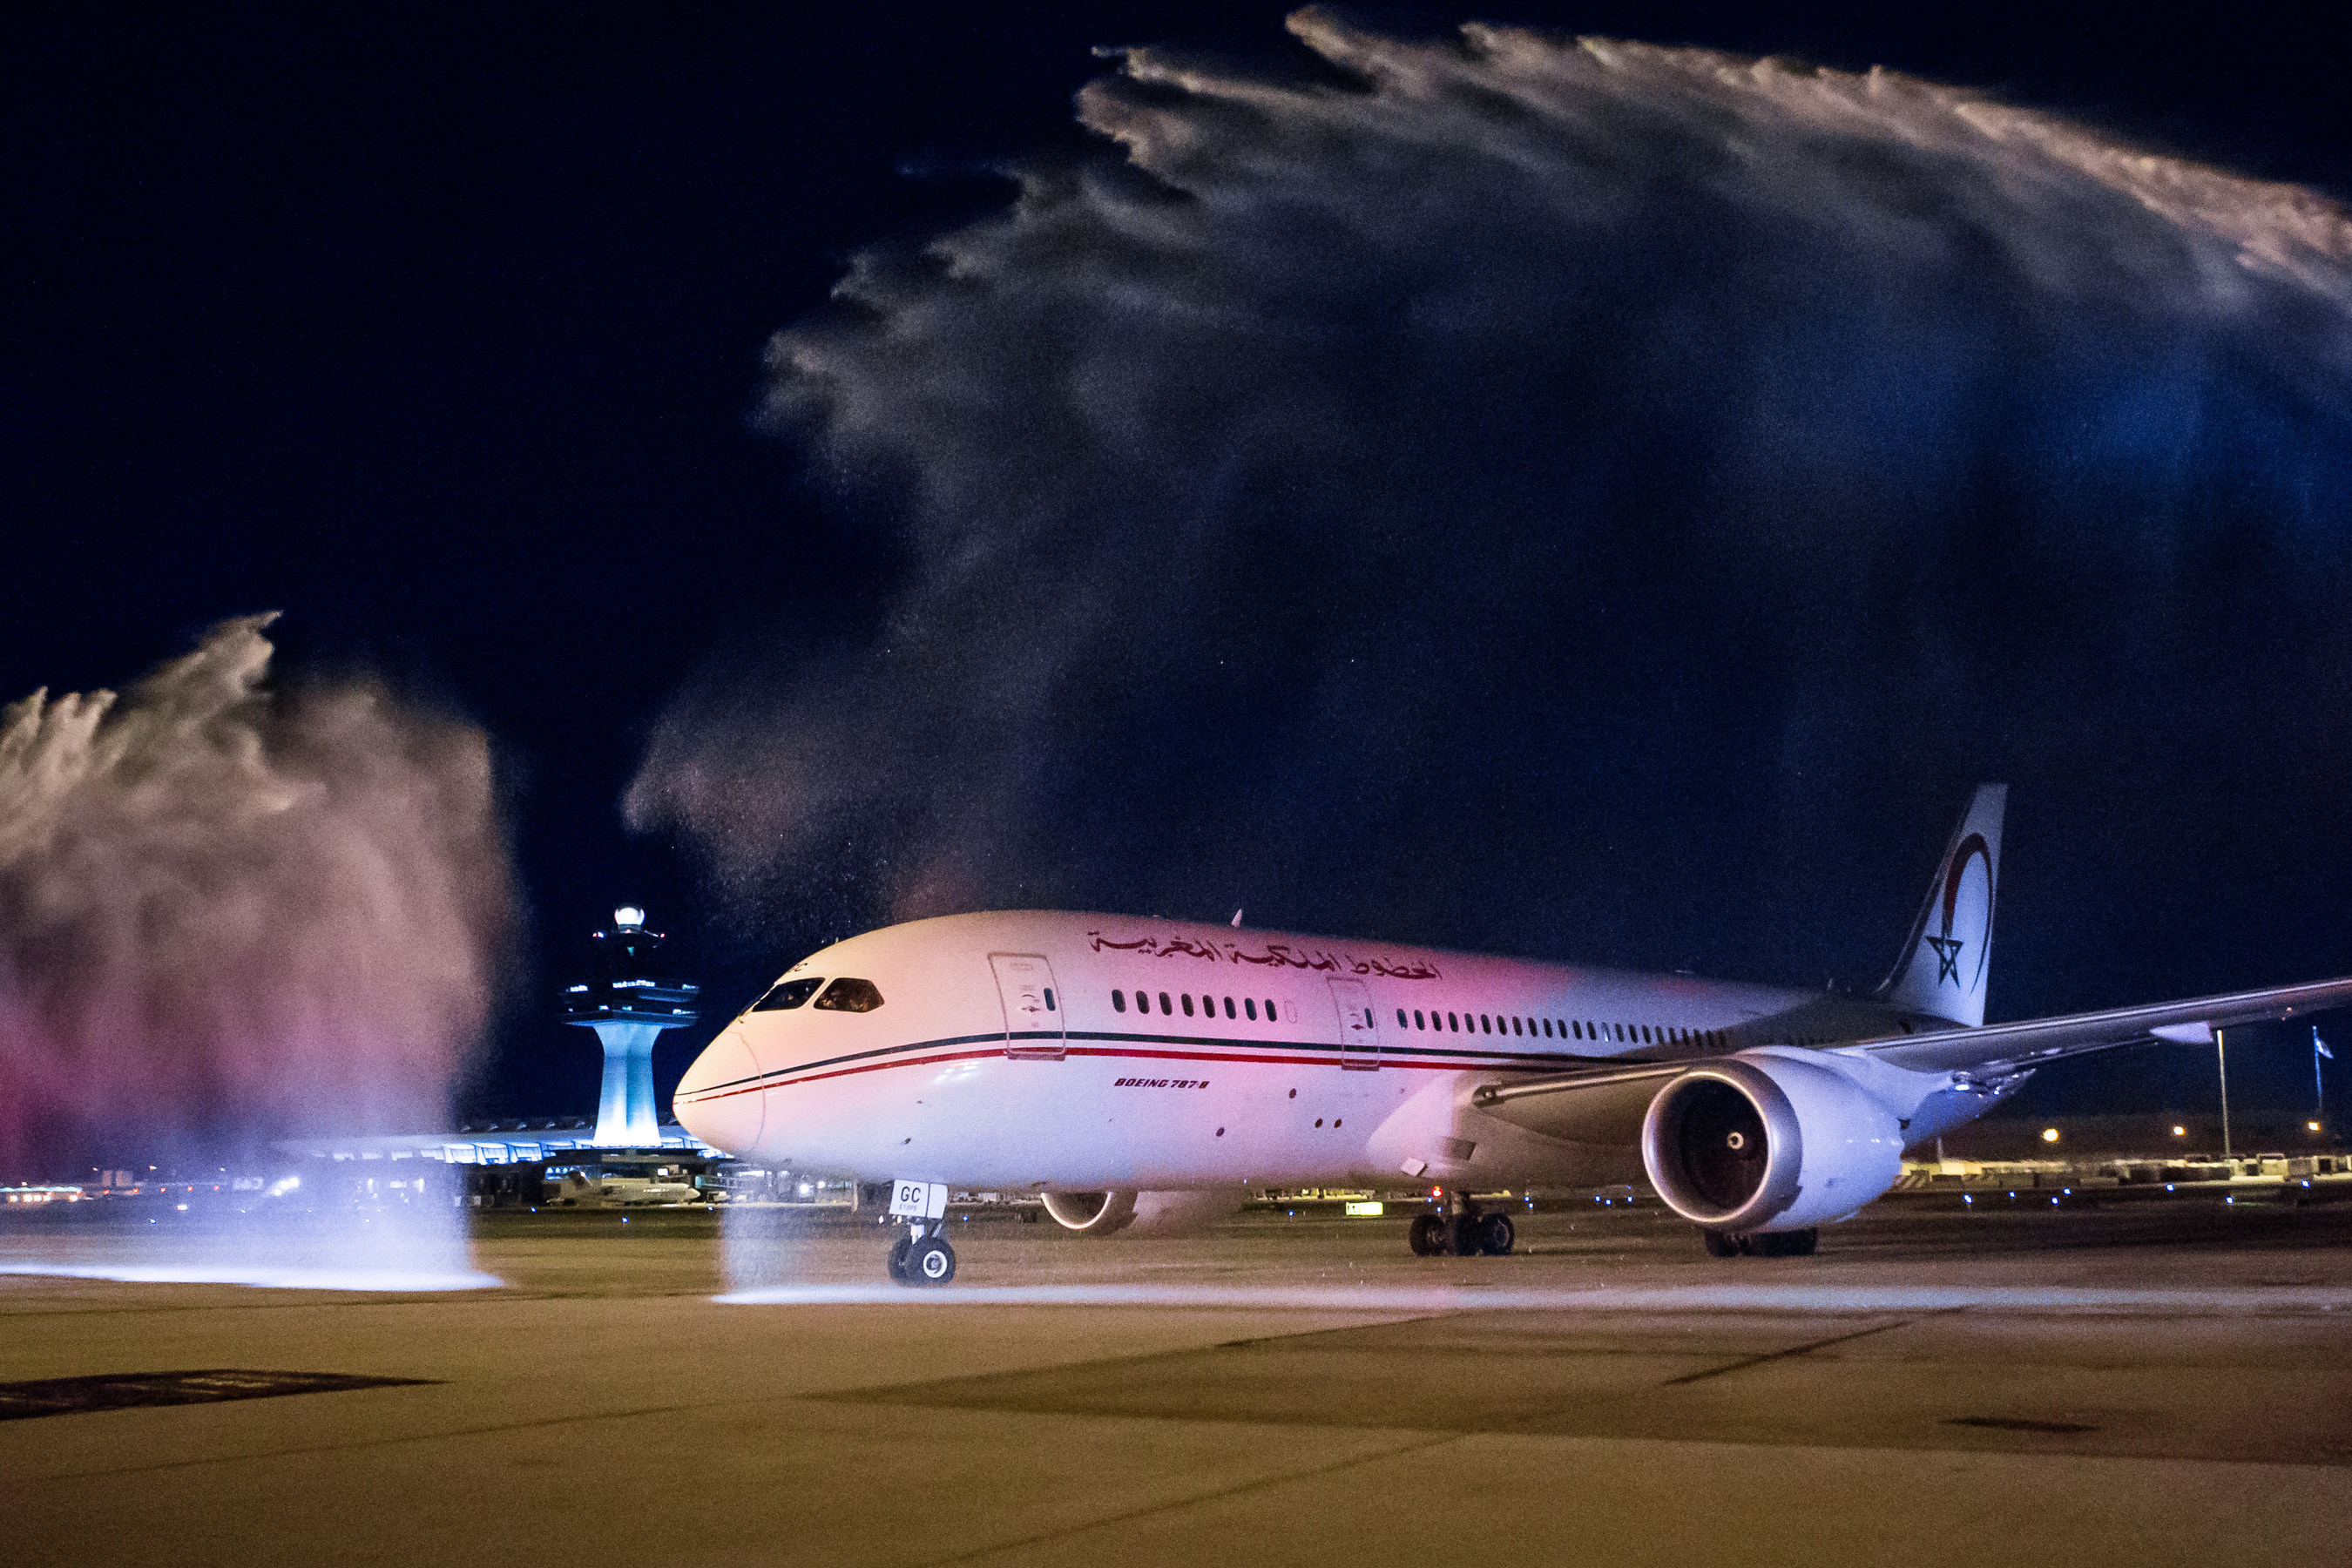 A Royal Air Maroc Boeing 787 Dreamliner taxis under a water cannon salute at Washington Dulles International Airport during an official welcome ceremony for the inaugural flight from Casablanca to Washington, D.C.